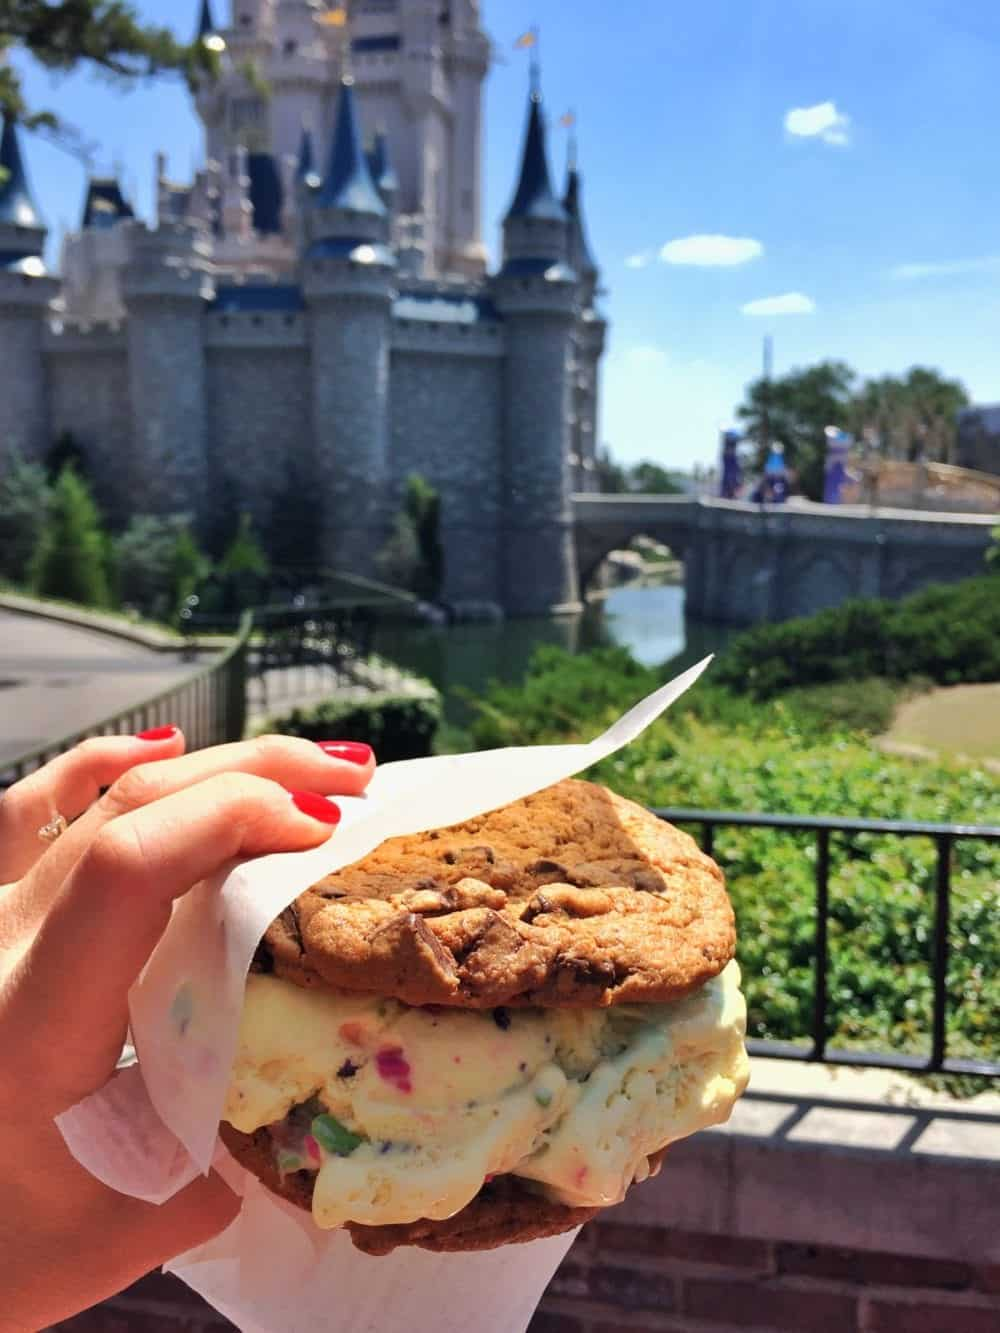 An Ice Cream Cookie Sandwich with the Disney Castle in the Background